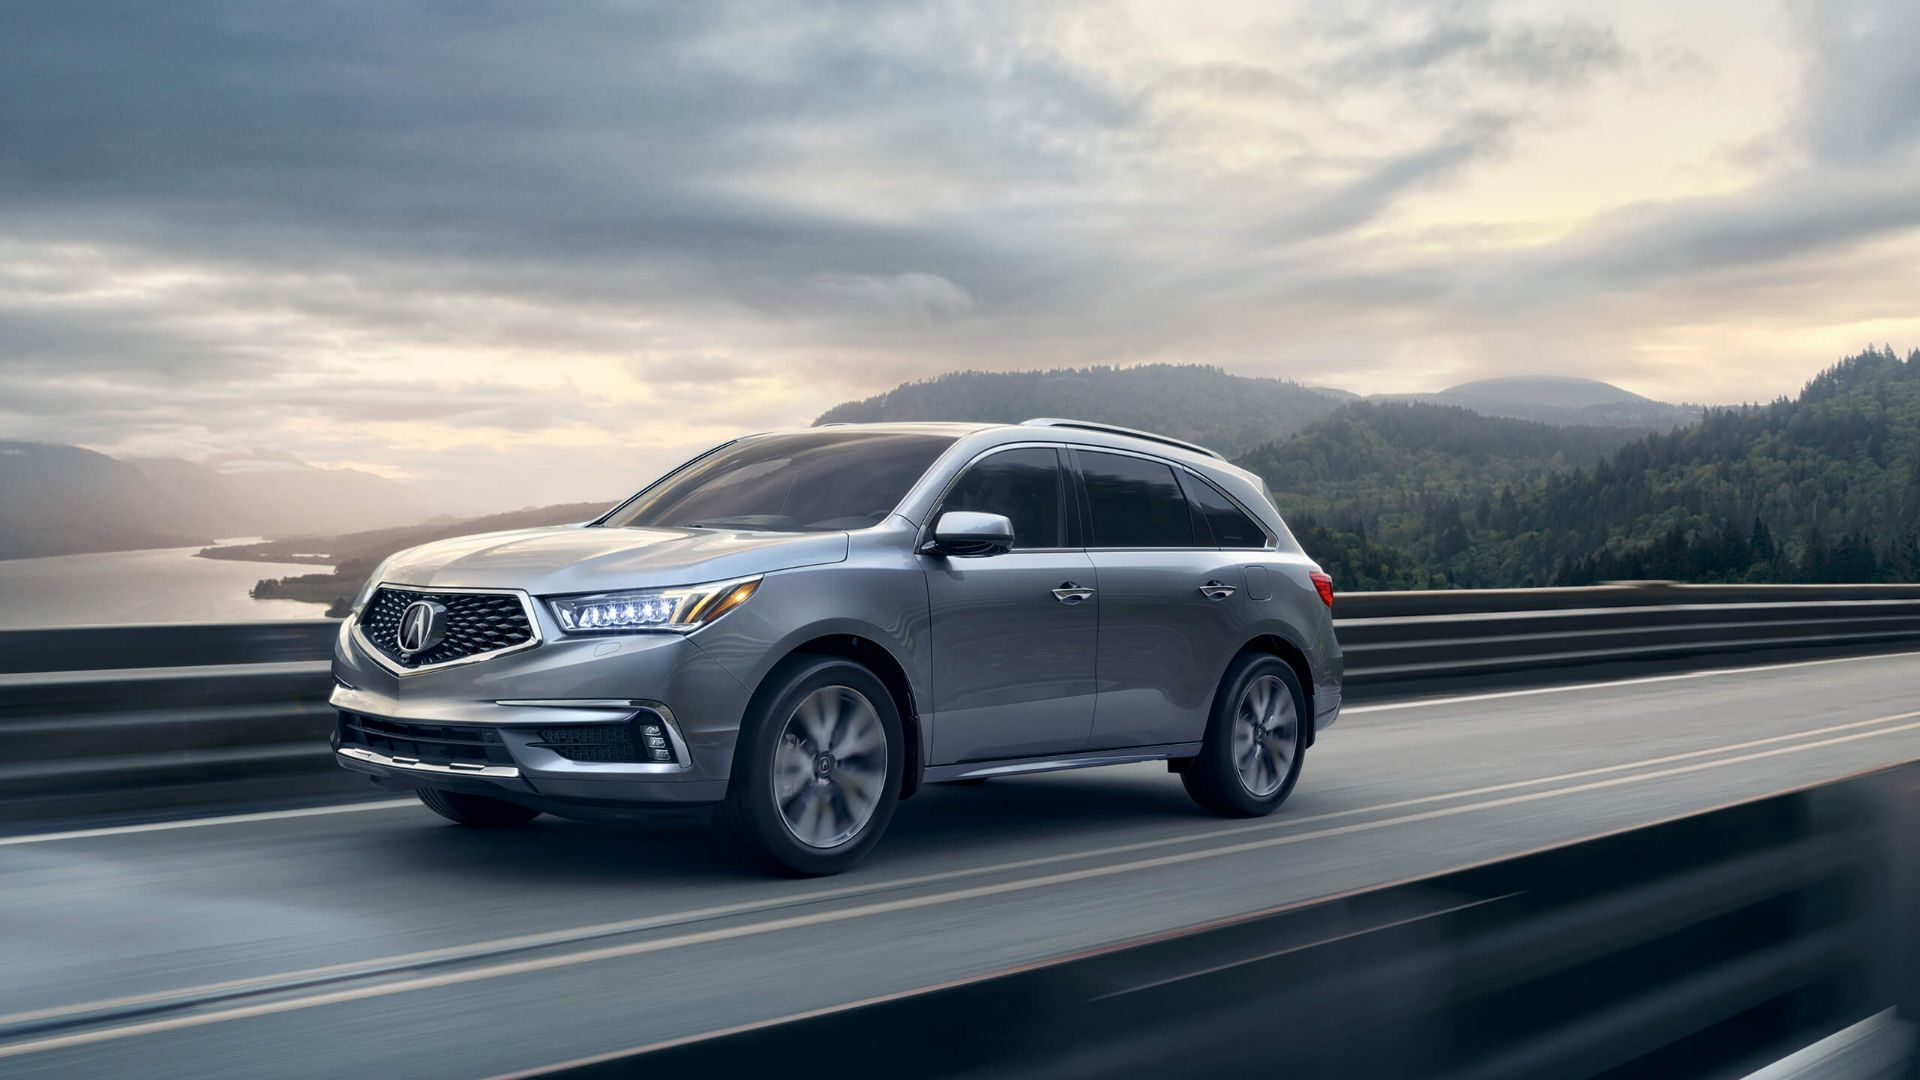 The 2019 Acura MDX: Transport Your Family with Luxury and Style